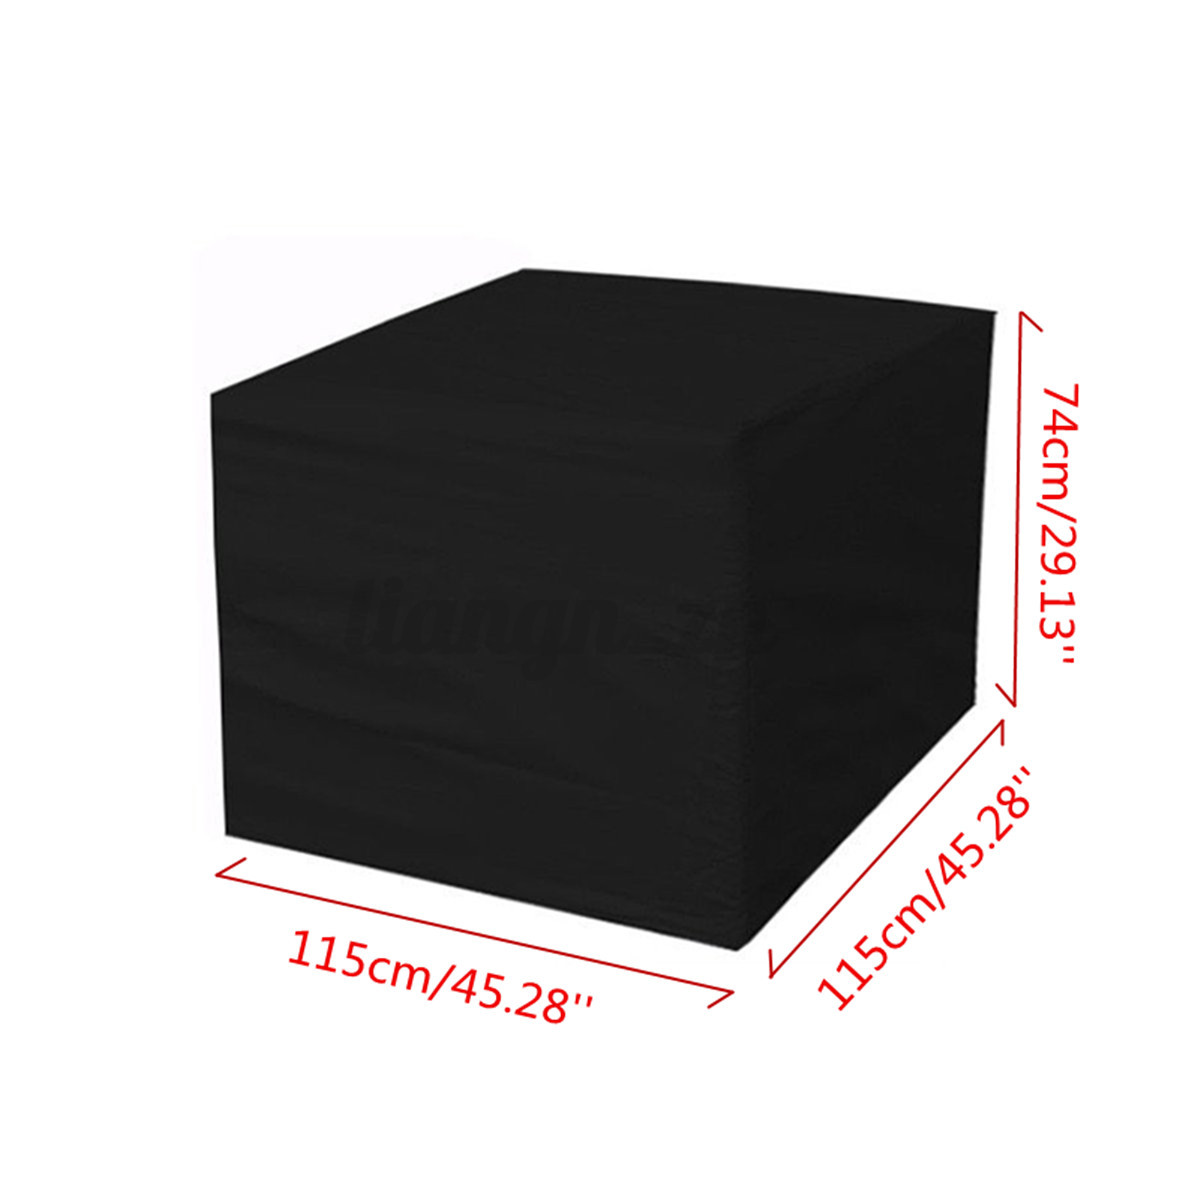 9-Size-Waterproof-Furniture-Cover-Outdoor-Garden-Yard-Patio-Table-Protection